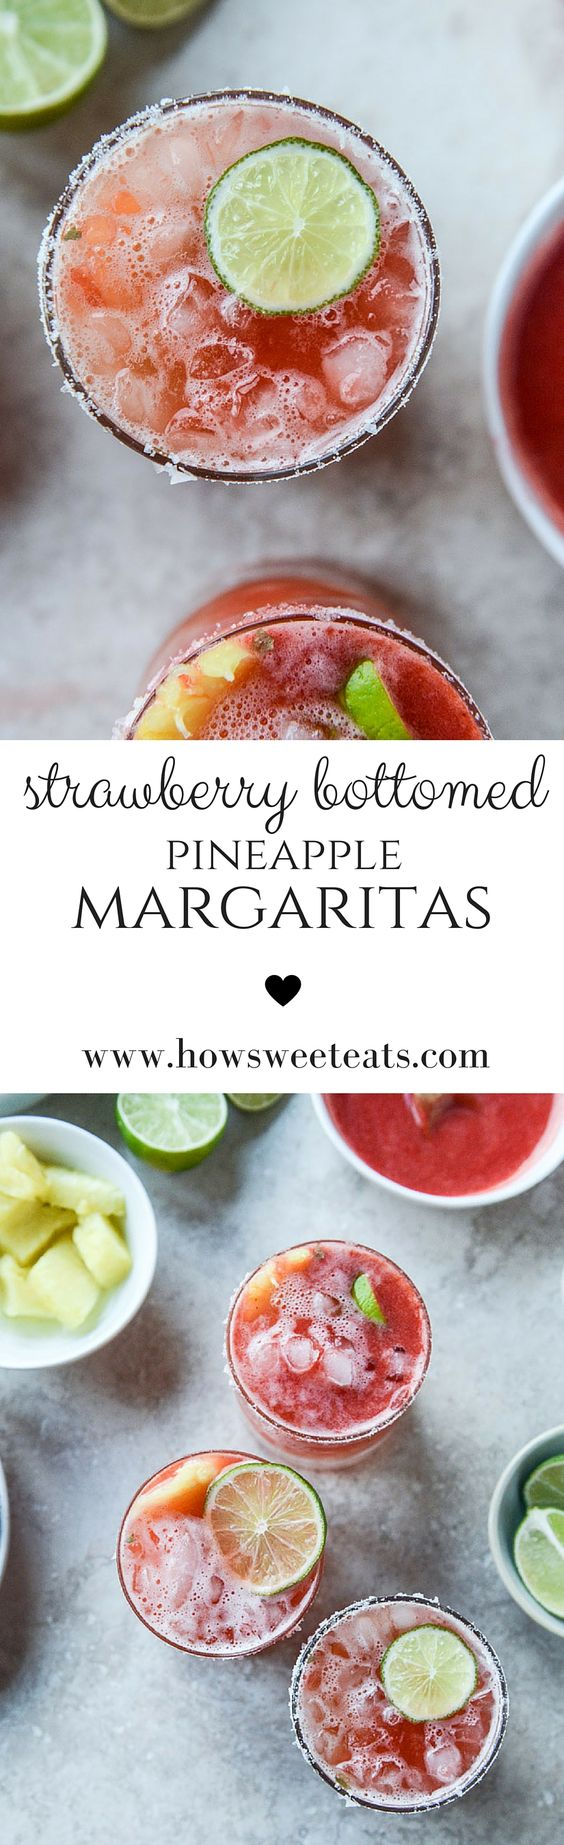 Strawberry Bottomed Pineapple Margaritas by @howsweeteats I howsweeteats.com